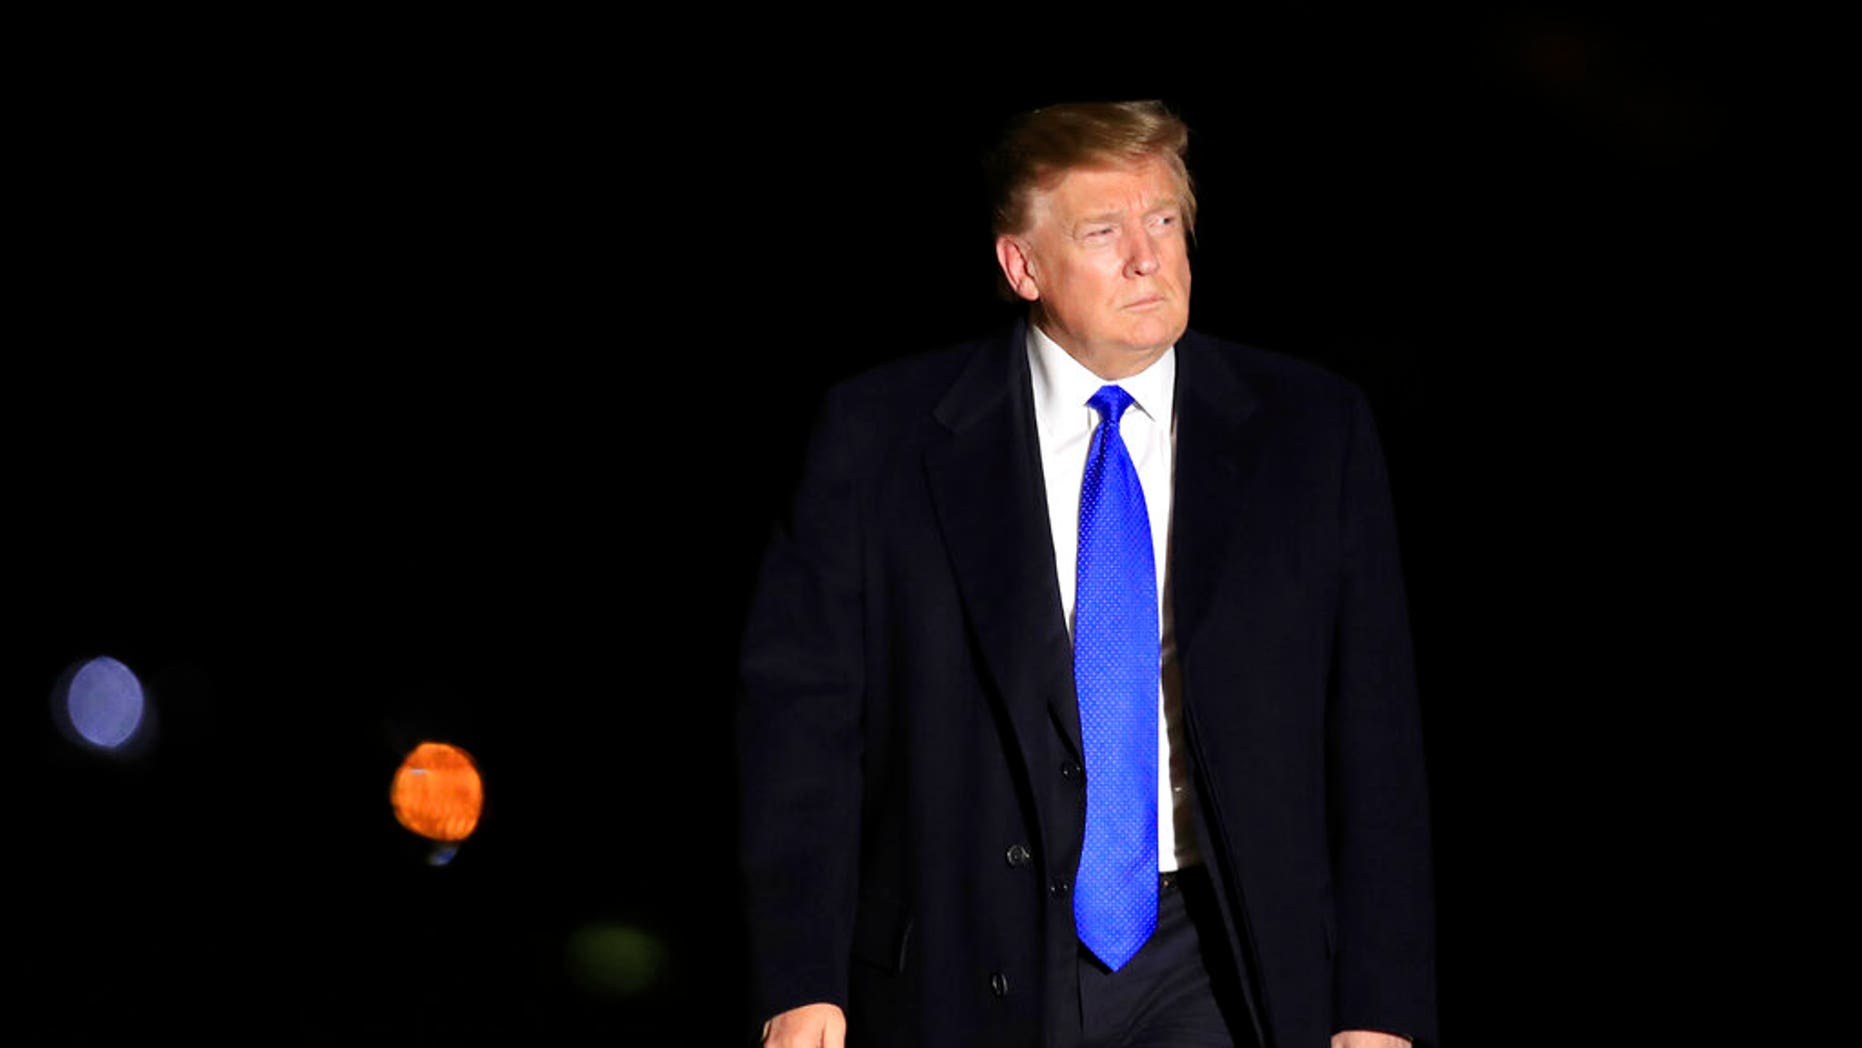 ae020d9fb8 President Donald Trump arriving at the White House in Washington from  summit talks with North Korean